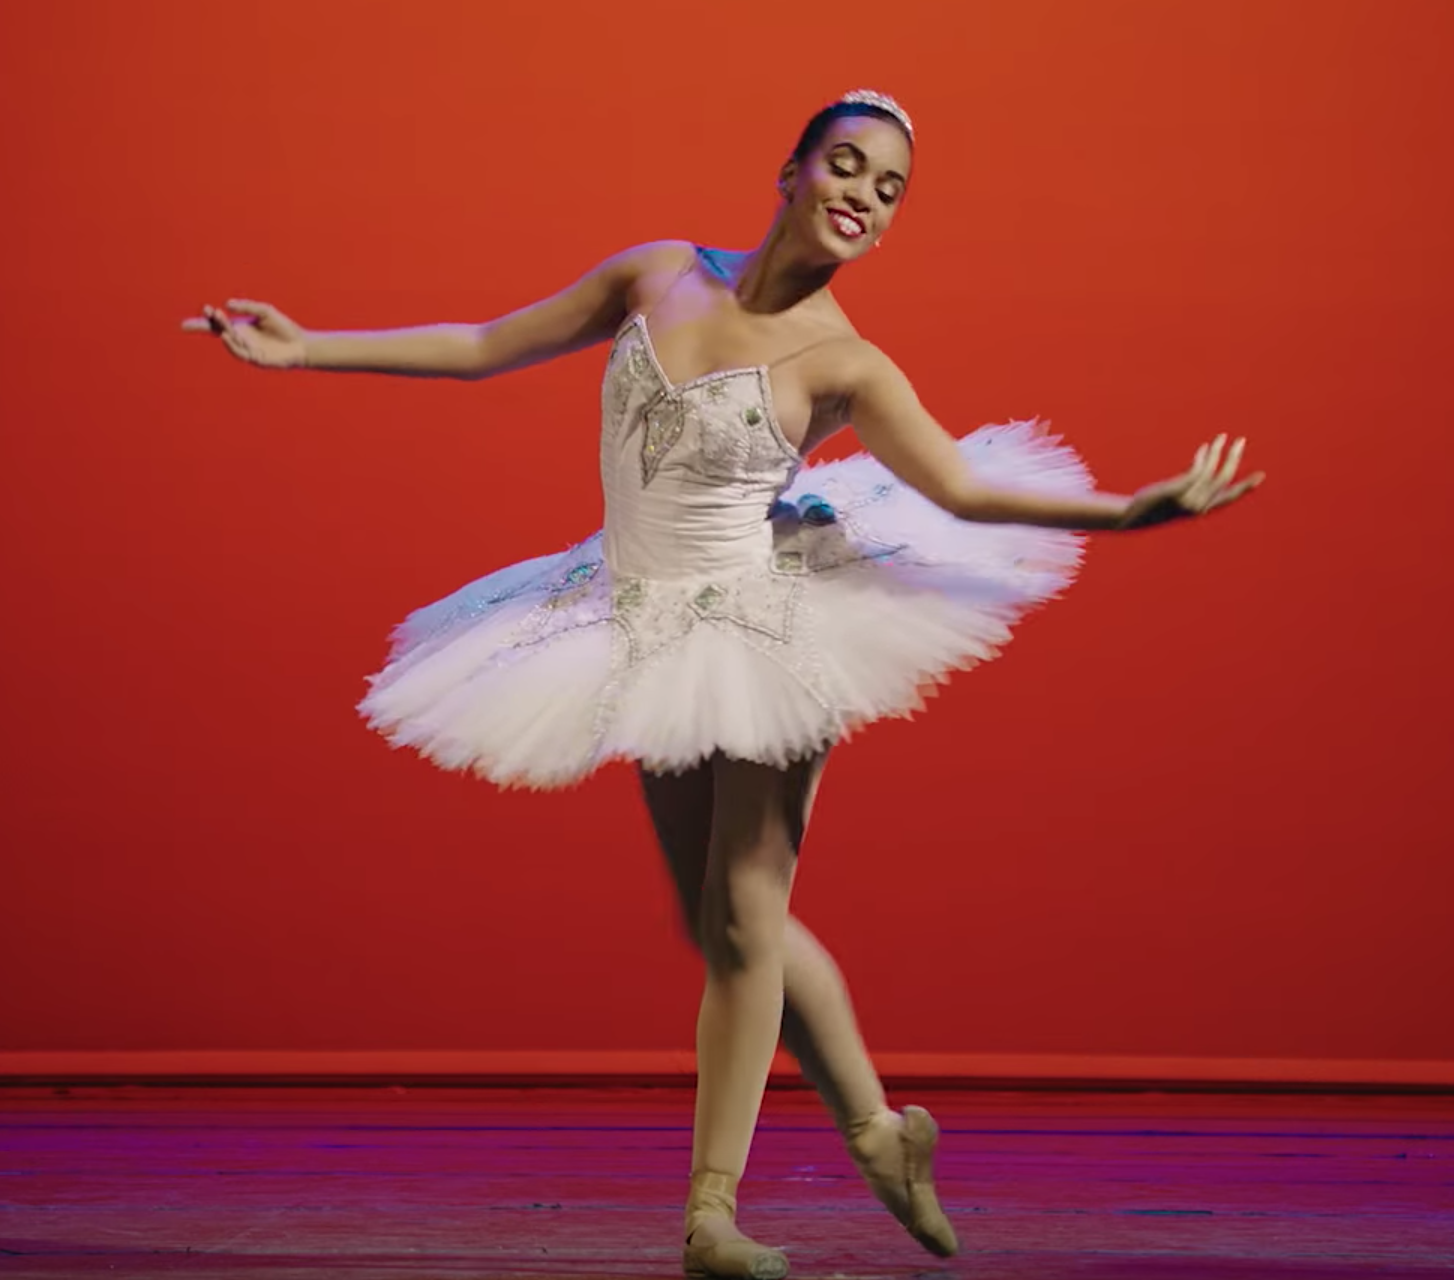 We *so* needed this gorgeous video about black ballerinas, because representation matters